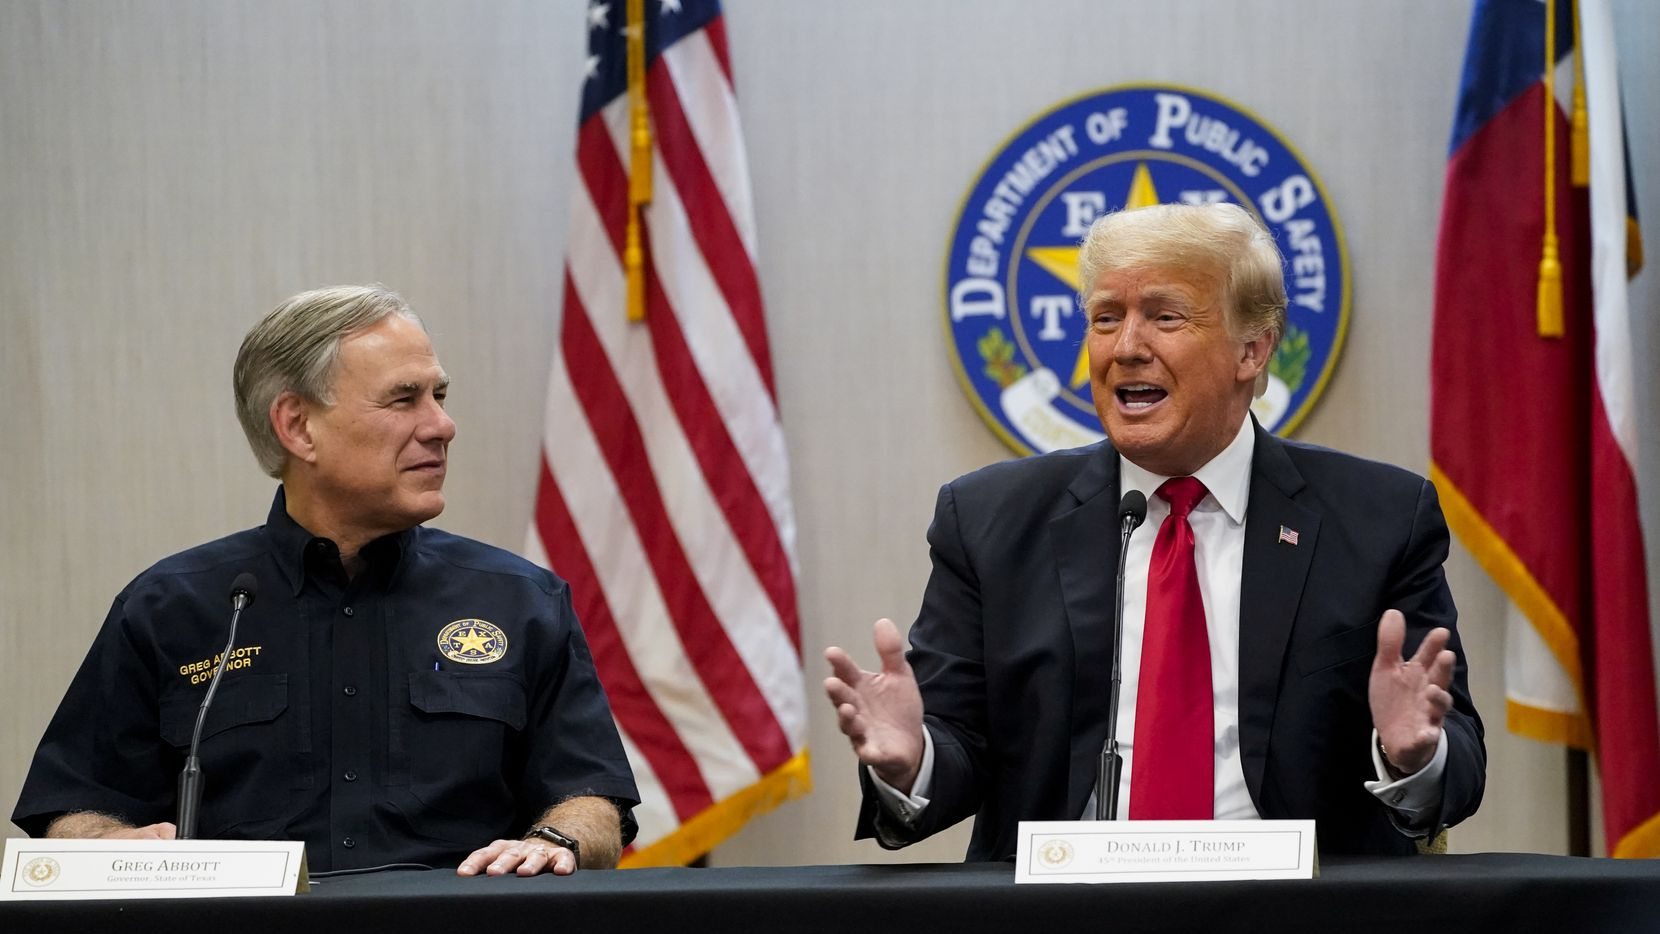 Texas Gov. Greg Abbott and former President Donald Trump attend a briefing on border security with state officials and law enforcement at the Weslaco Department of Public Safety DPS Headquarters before touring the US-Mexico border wall on June 30, 2021.  Trump was invited to South Texas by  Abbott, who has taken up his immigration mantle by vowing to continue building the border wall.